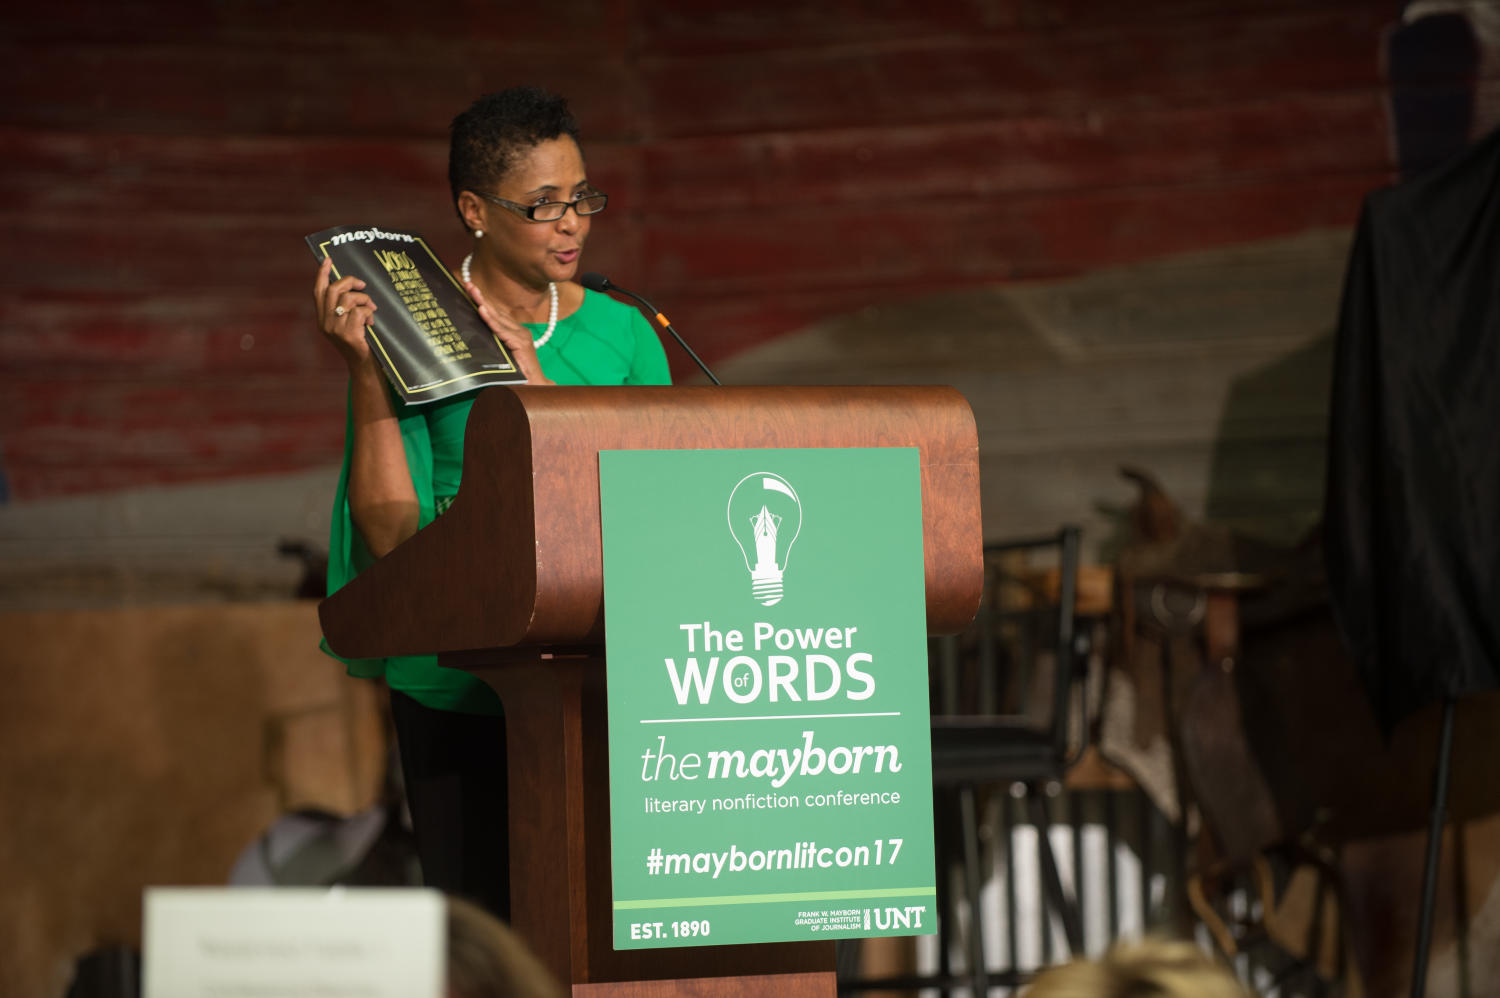 """[Dorothy Bland speaking from podium], Photograph of Dorothy Bland, dean of the Mayborn School of Journalism, speaking to the attendees of the Mayborn Literary Nonfiction Conference from behind a podium. She is holding up the magazine that was published for the event and the poster on the front of the podium reads """"The Power of Words, The Mayborn Literary Nonfiction Conference, #maybornlitcon17"""". They are all gathered in the Austin Ranch Banquet Hall on the grounds of the Hilton DFW Lakes Executive Conference Center in Grapevine, TX.,"""